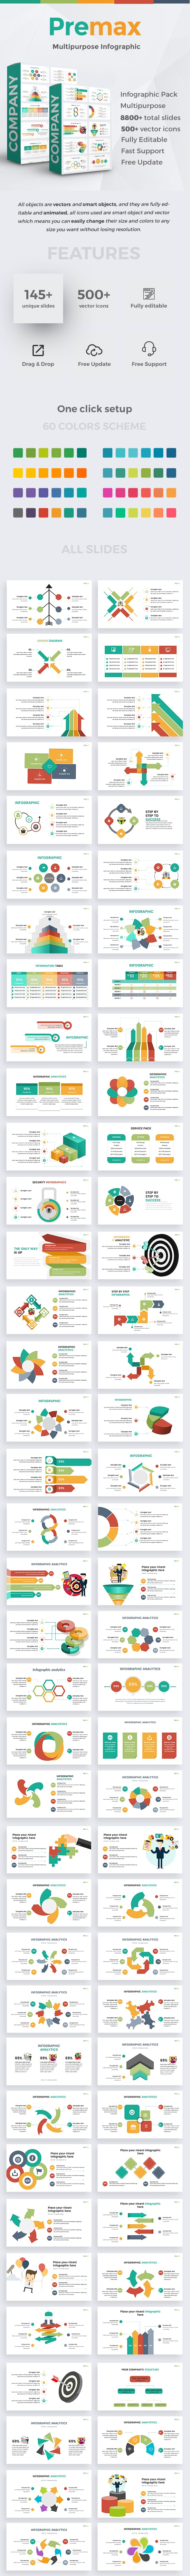 Premax Infographic Pack Keynote Template - Business Keynote Templates